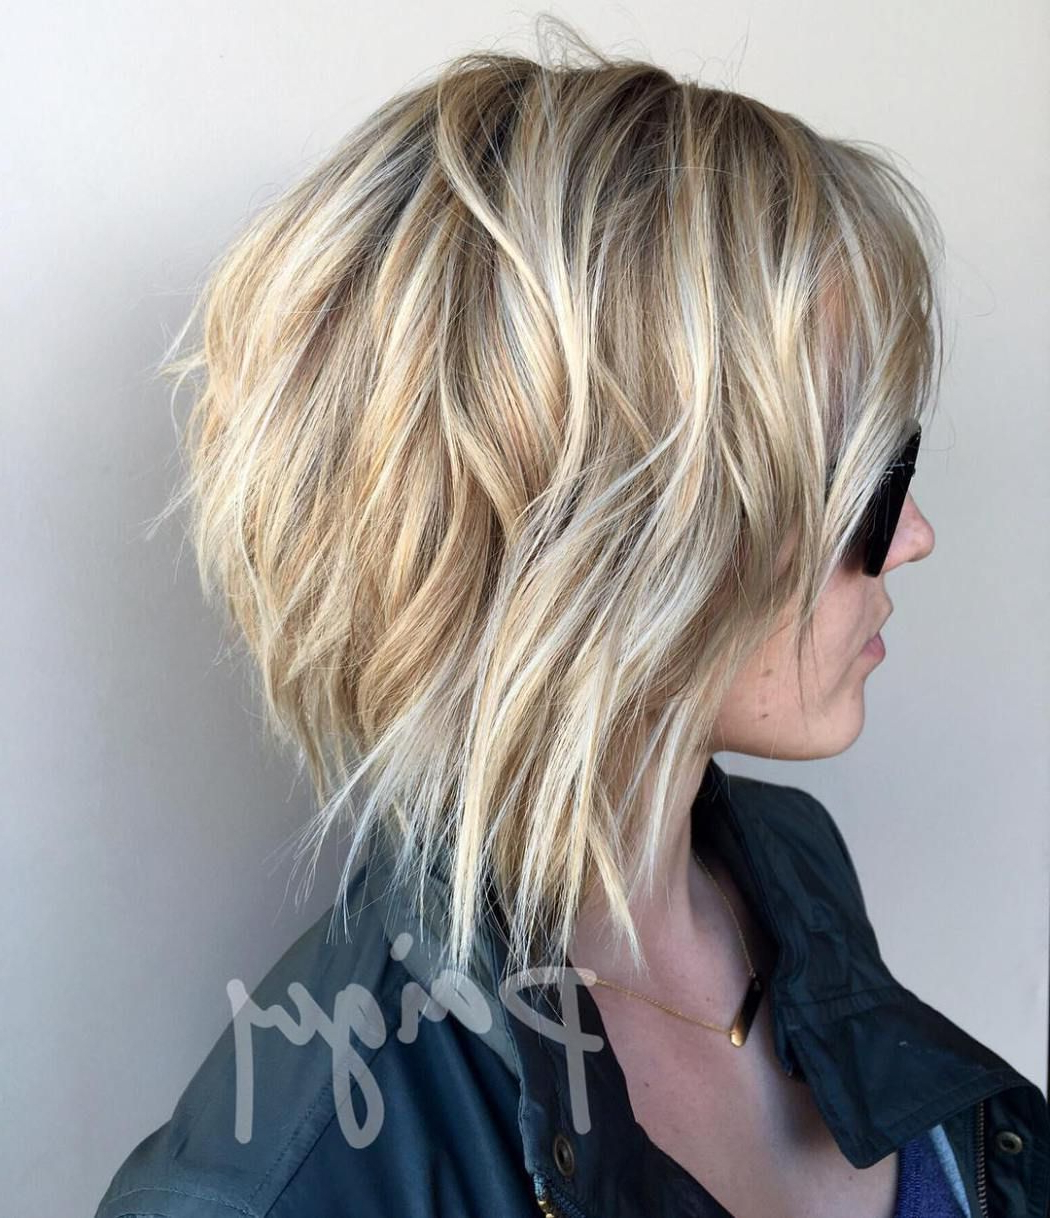 Widely Used Longer Tousled Caramel Blonde Shag Haircuts Intended For Pin On Hair (View 20 of 20)